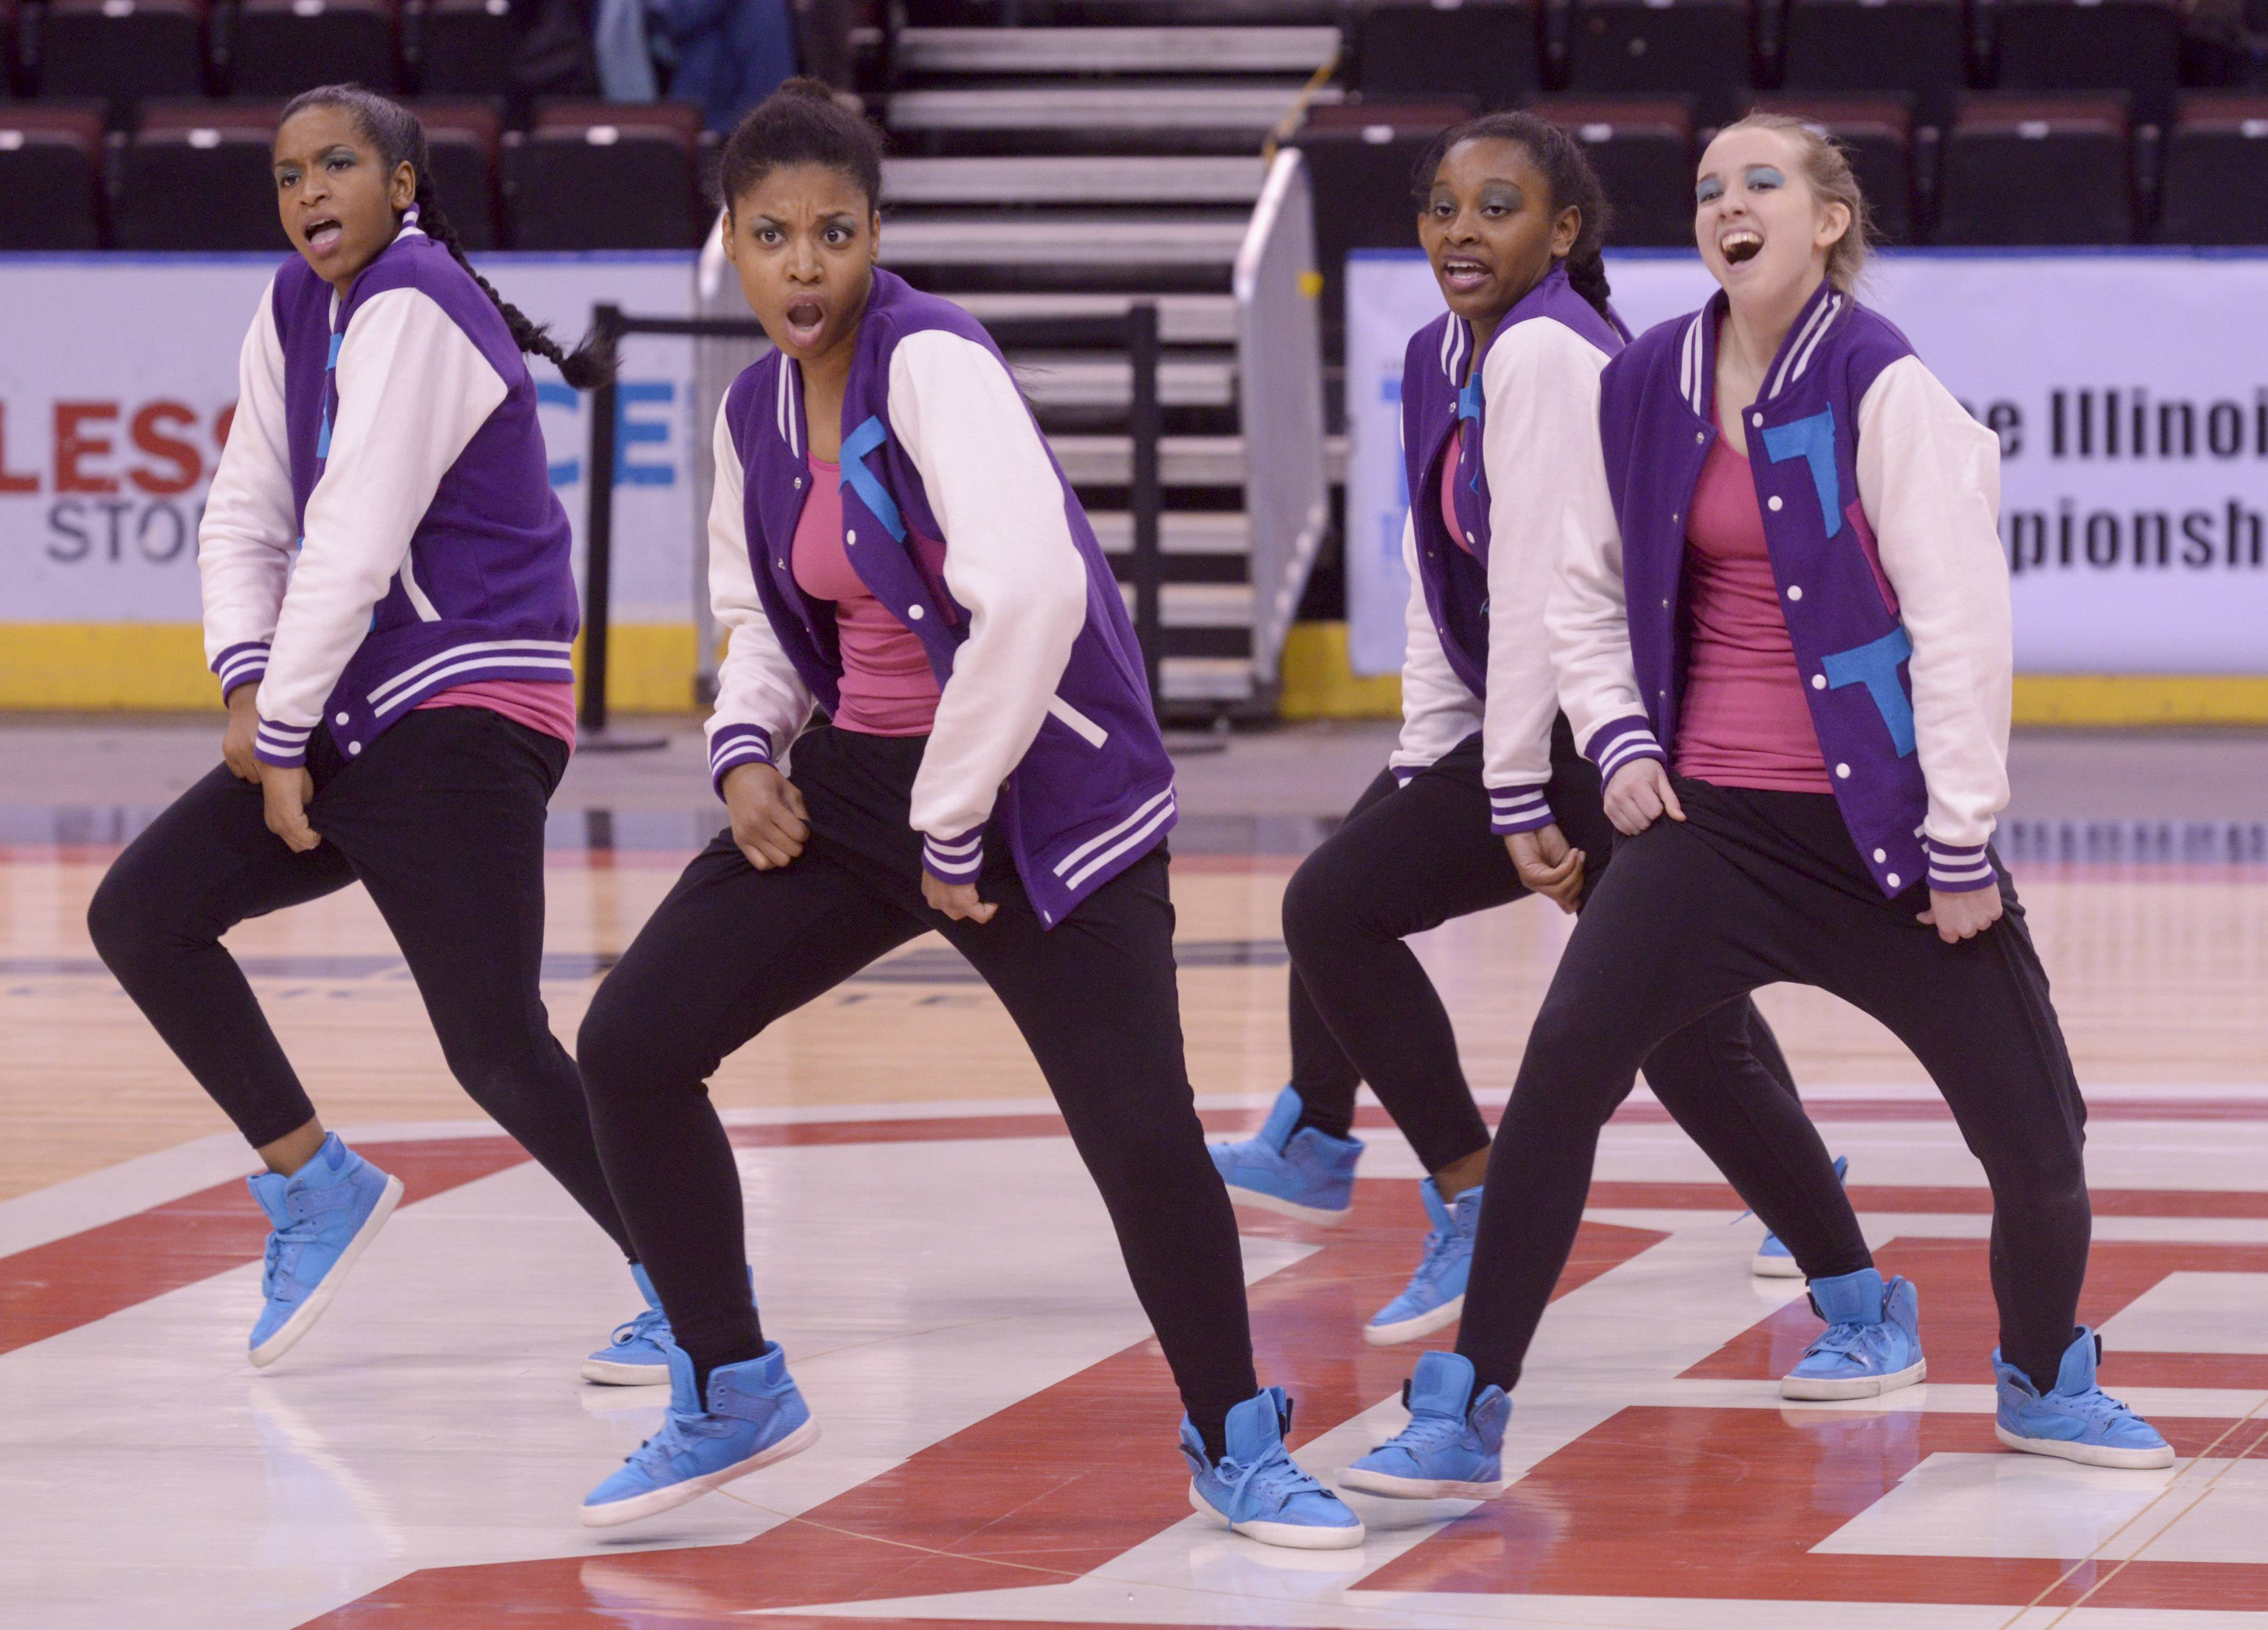 Illinois Math and Science Academy performs in the 2A Hip Hop category during the Team Dance Illinois 2014 Grand Championship in Peoria Sunday.